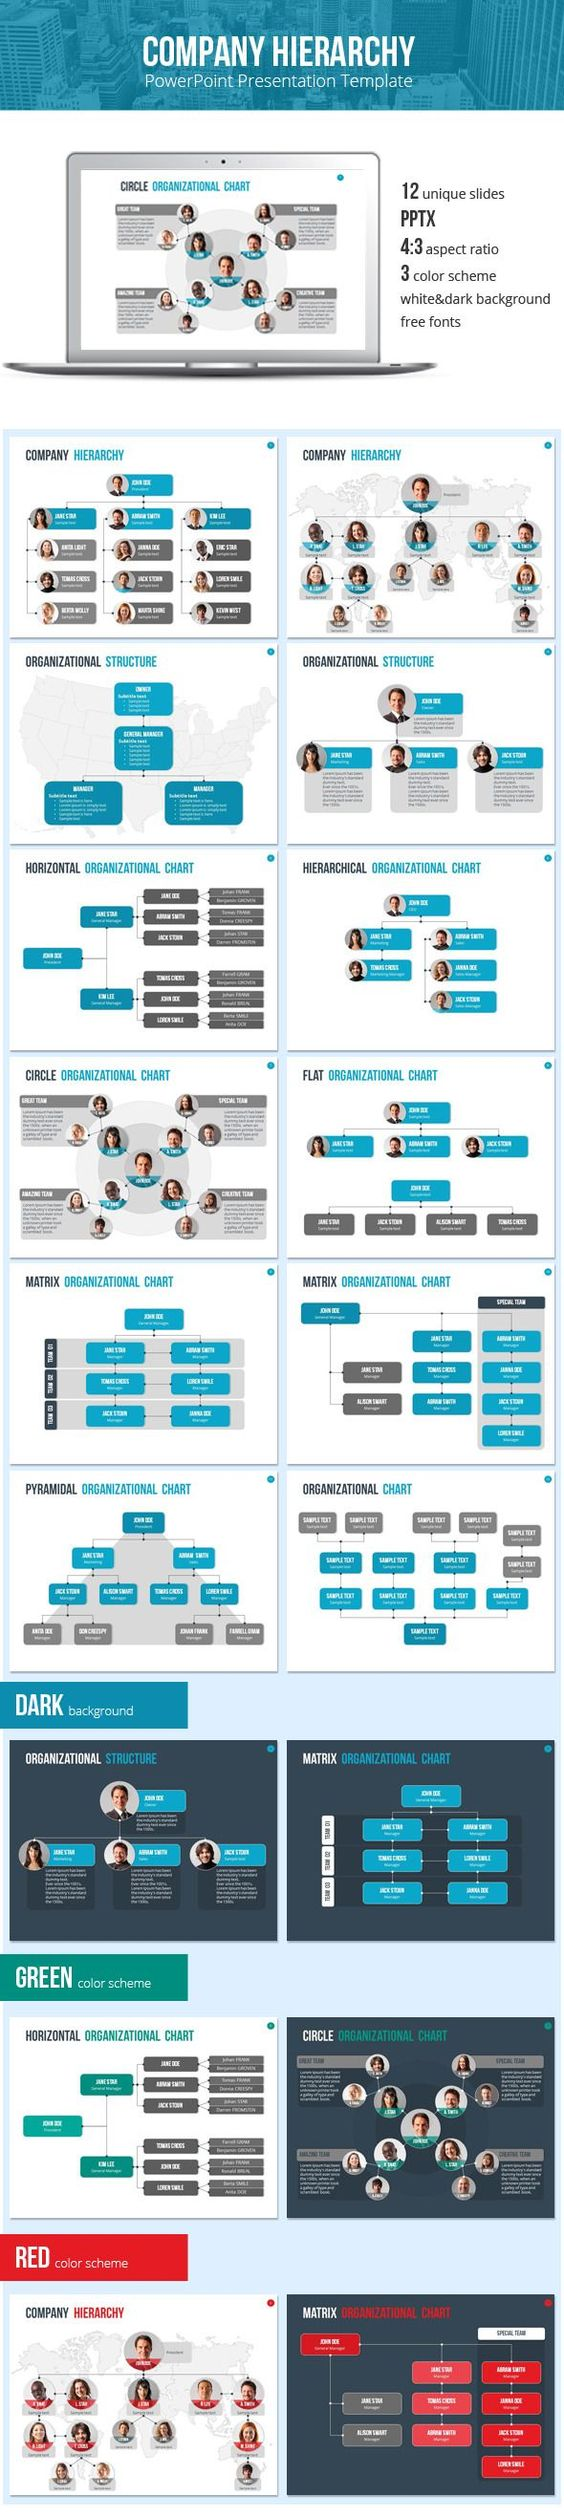 Organizational chart and hierarchy template business powerpoint organizational chart and hierarchy template business powerpoint templates flashek Images